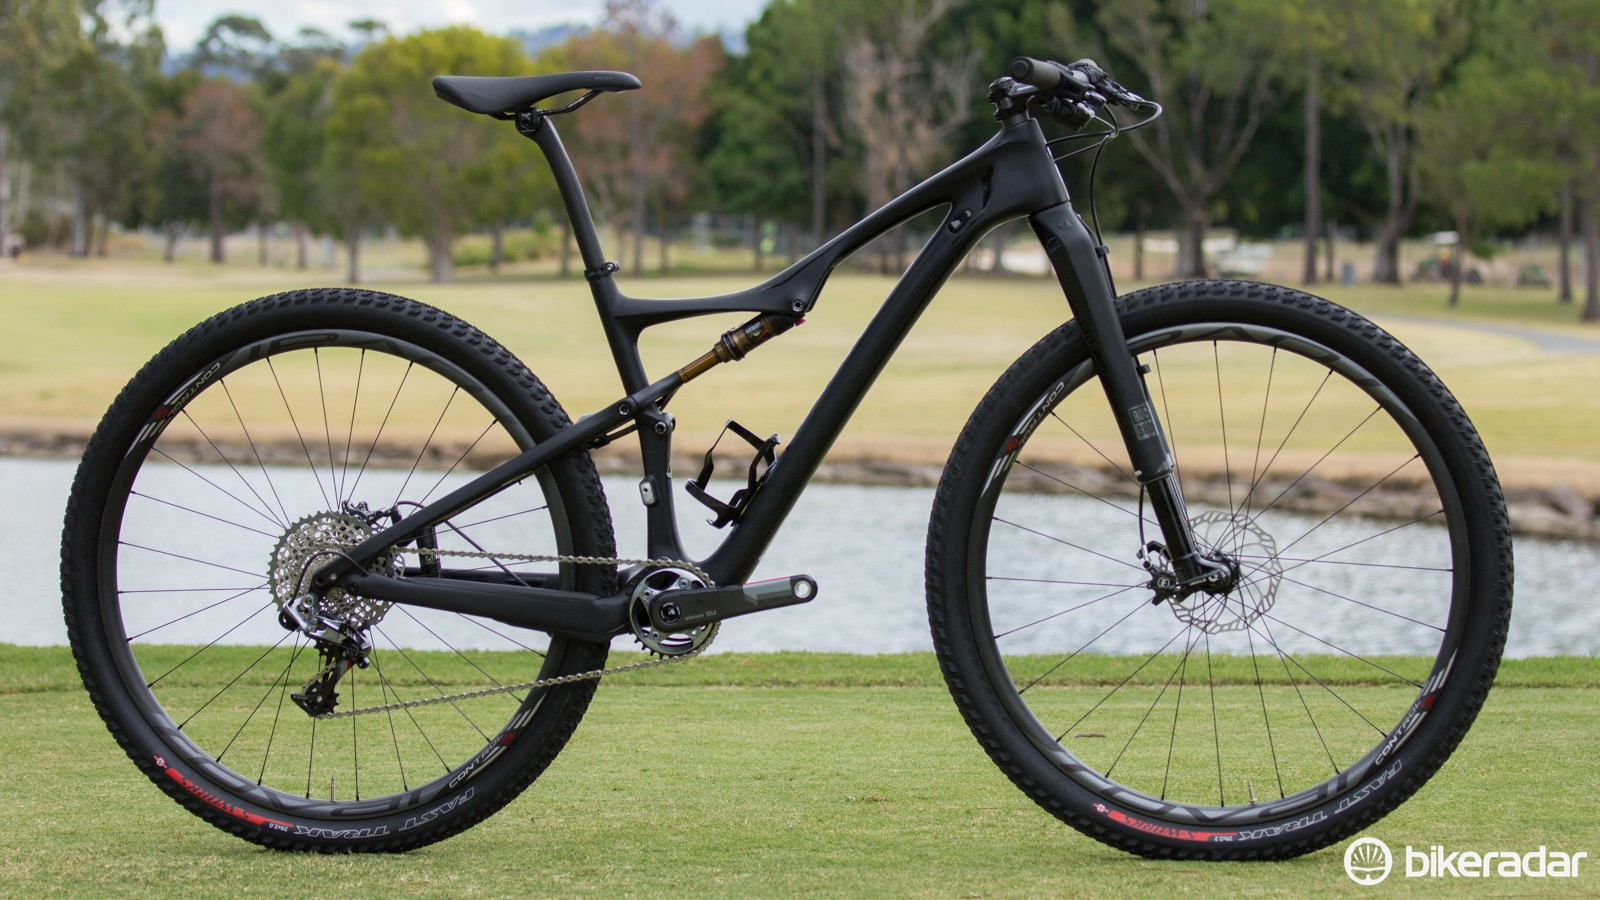 The S-Works Era 29 is a race-focused carbon dual suspension, and being women's-specific makes it a world first